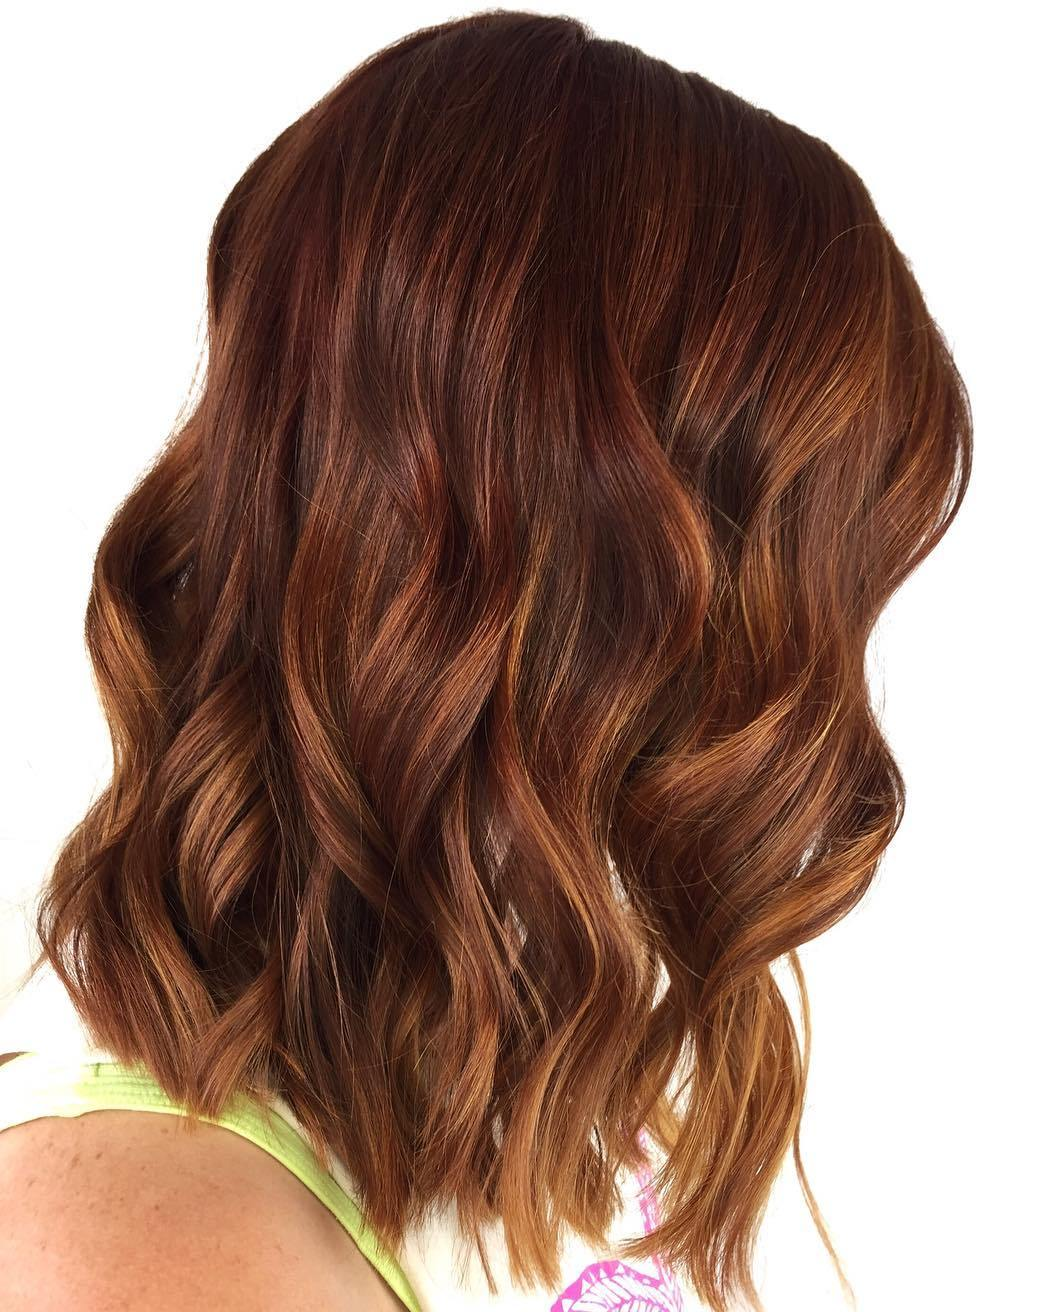 60 auburn hair colors to emphasize your individuality golden blonde highlights for auburn hair pmusecretfo Image collections